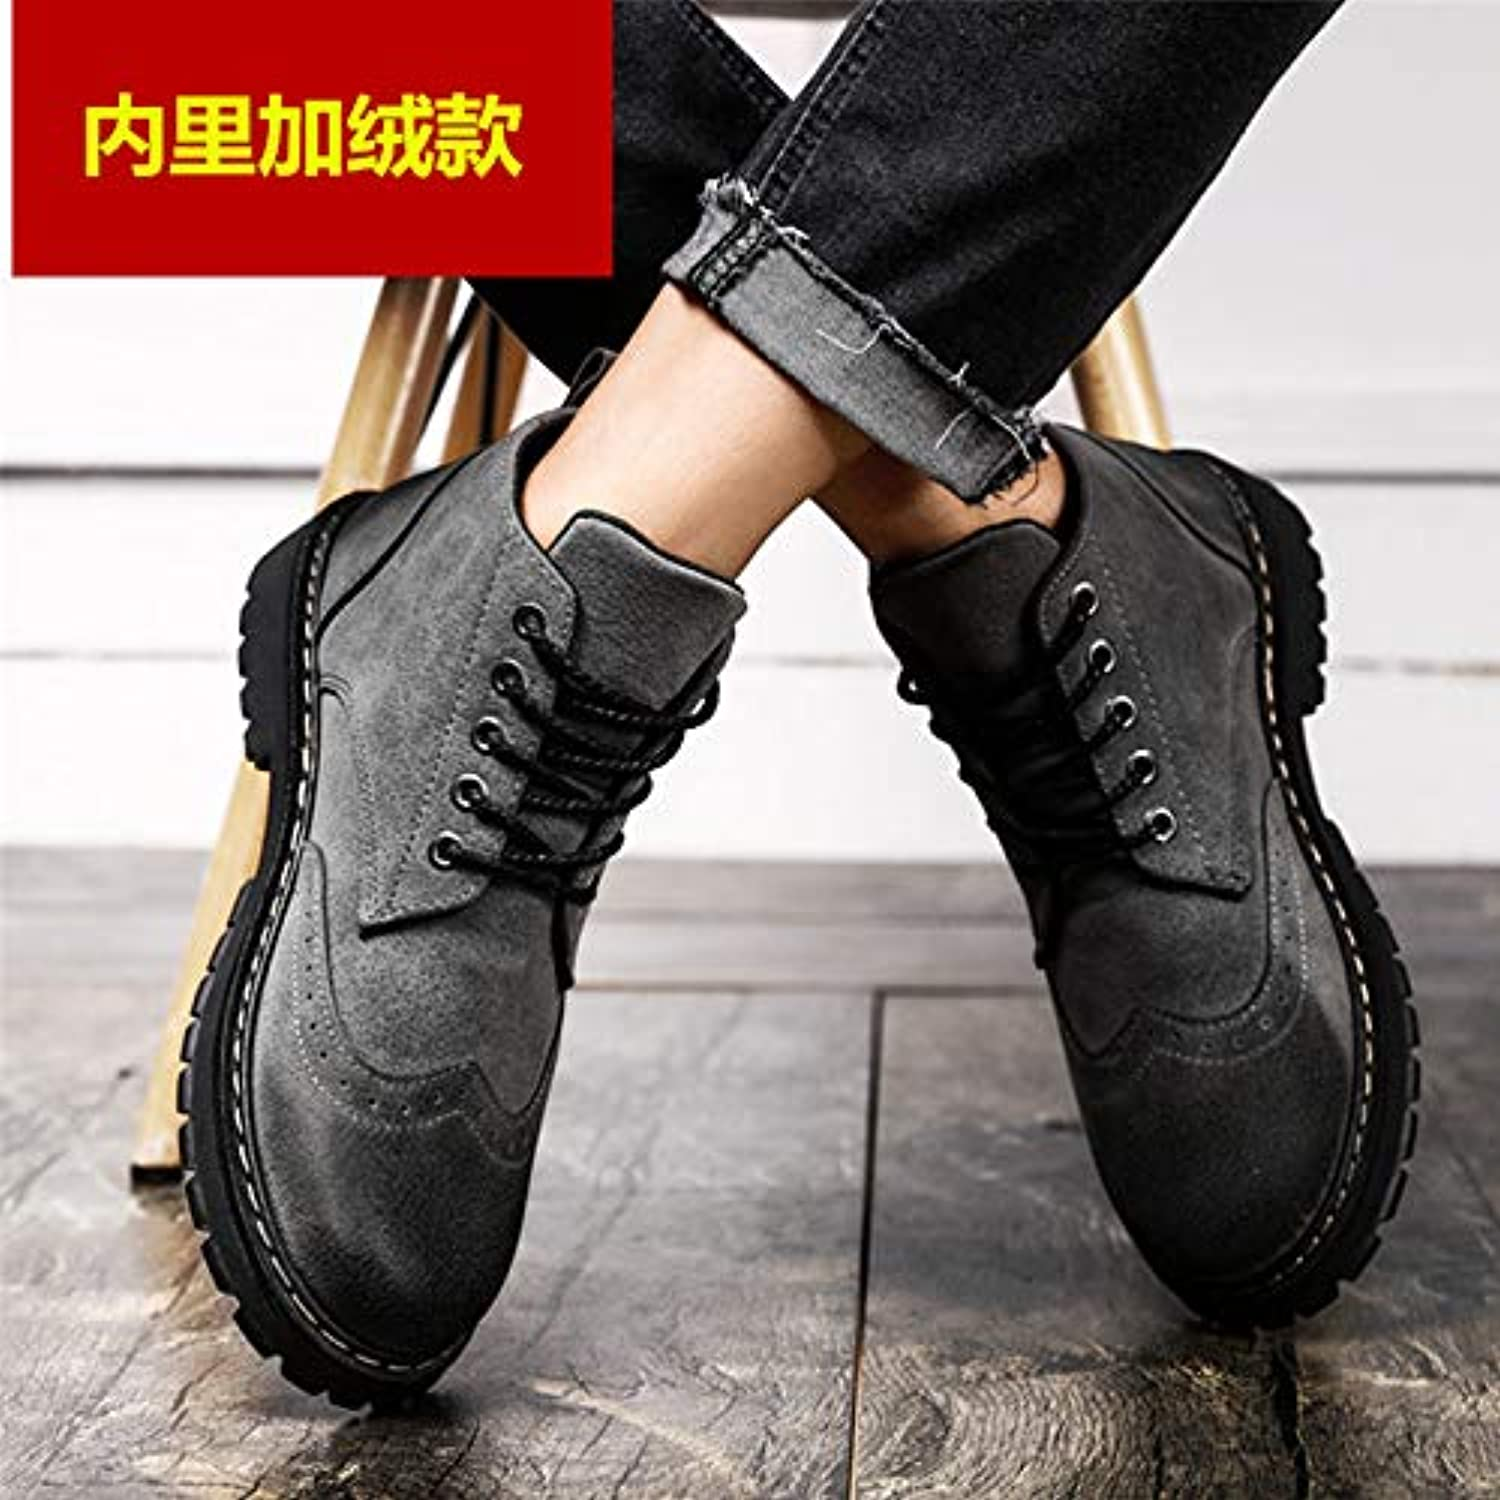 LOVDRAM Boots Men's Winter Martin Boots Men'S shoes High To Help Snow Boots Men'S Military Boots Cotton Warm Cotton shoes In The shoes To Help Men'S Boots